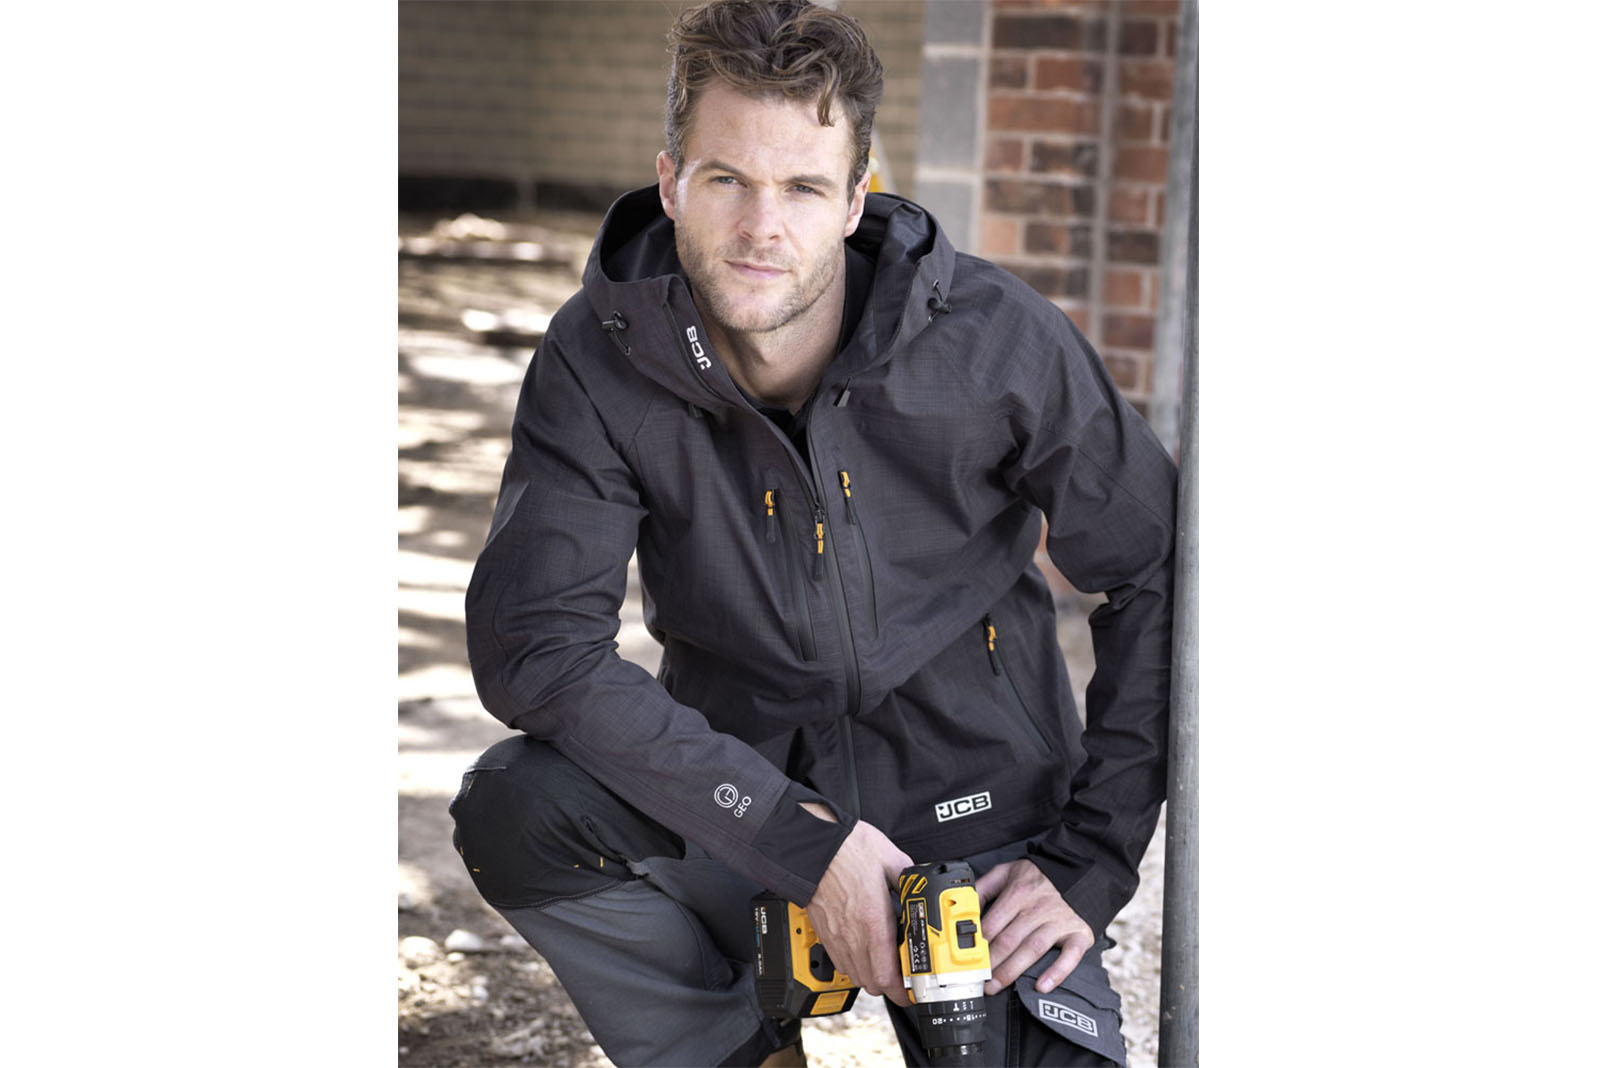 3 JCB Winter jackets to win